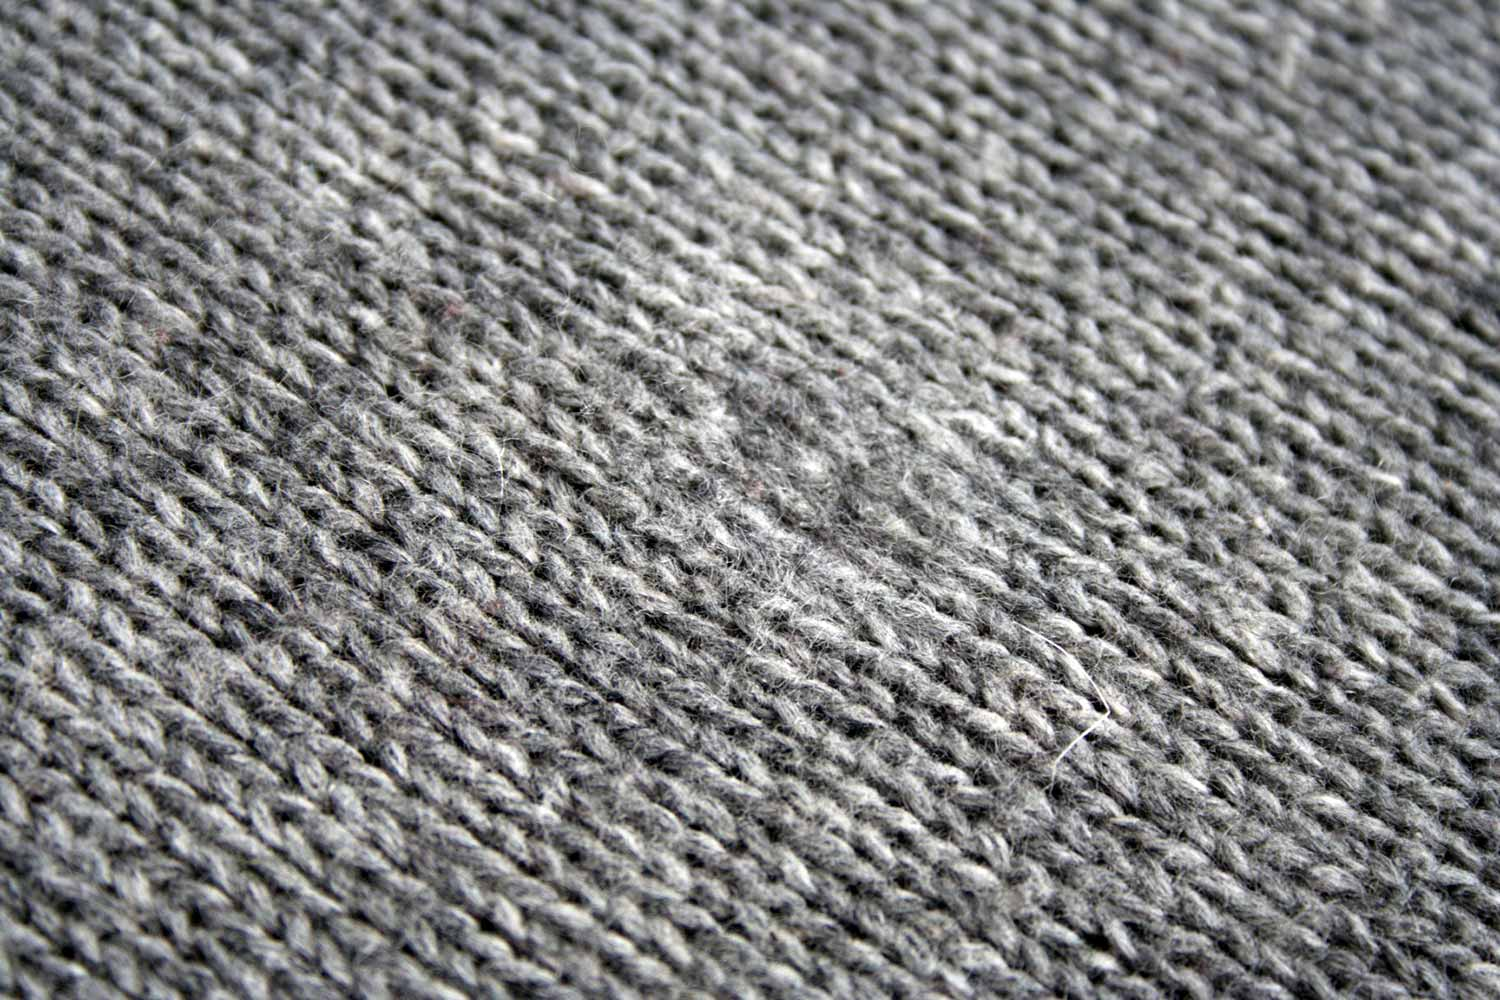 Grey stocking stitch knitted fabric with an area in centre where the stitches are less distinct.